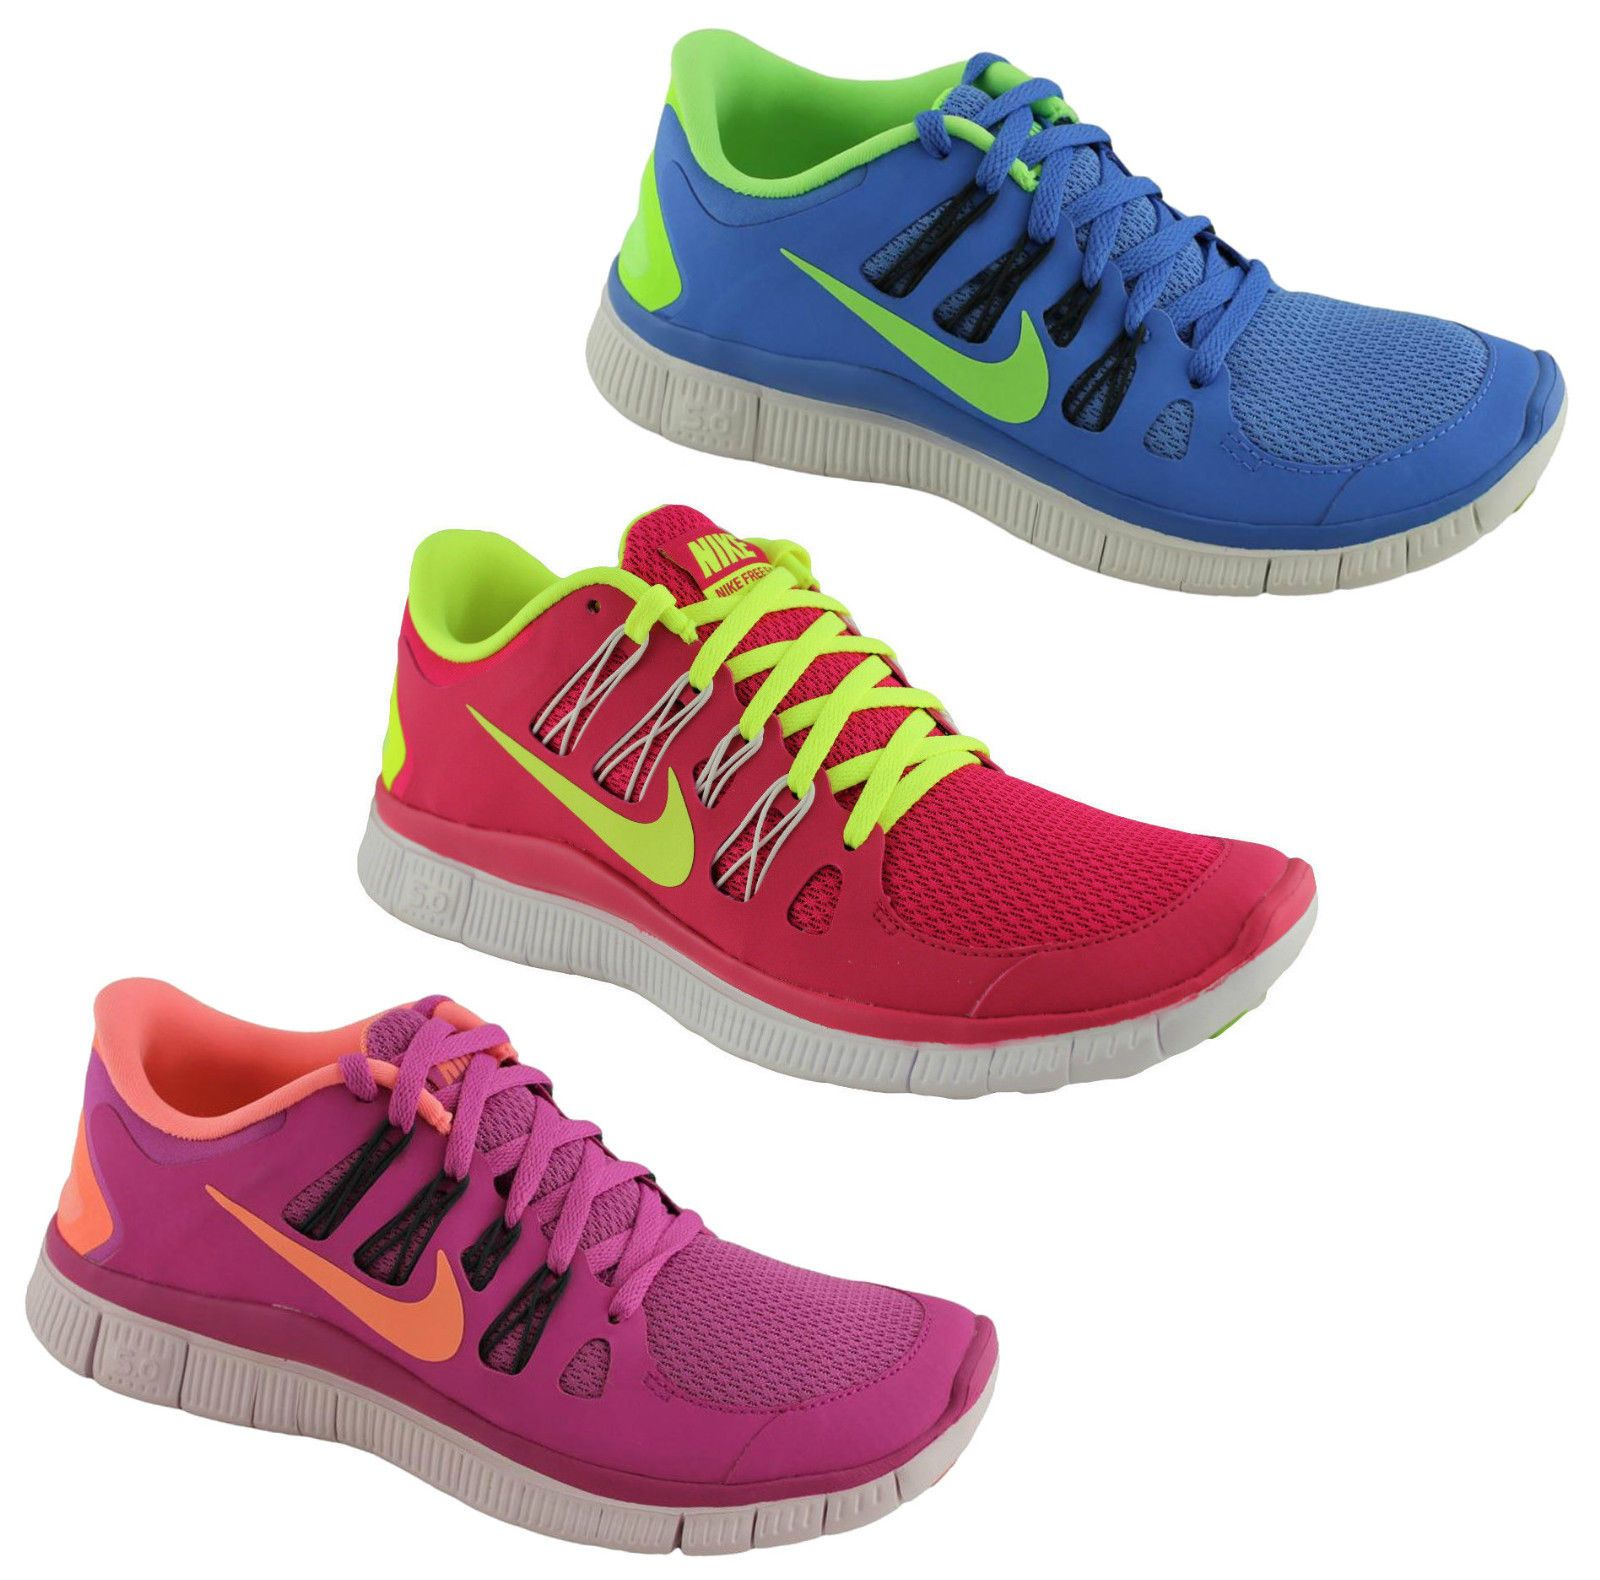 68d5dc262d2f NIKE FREE RUN 5.0+ WOMENS LADIES SHOES SNEAKERS RUNNING SHOES ON EBAY  AUSTRALIA